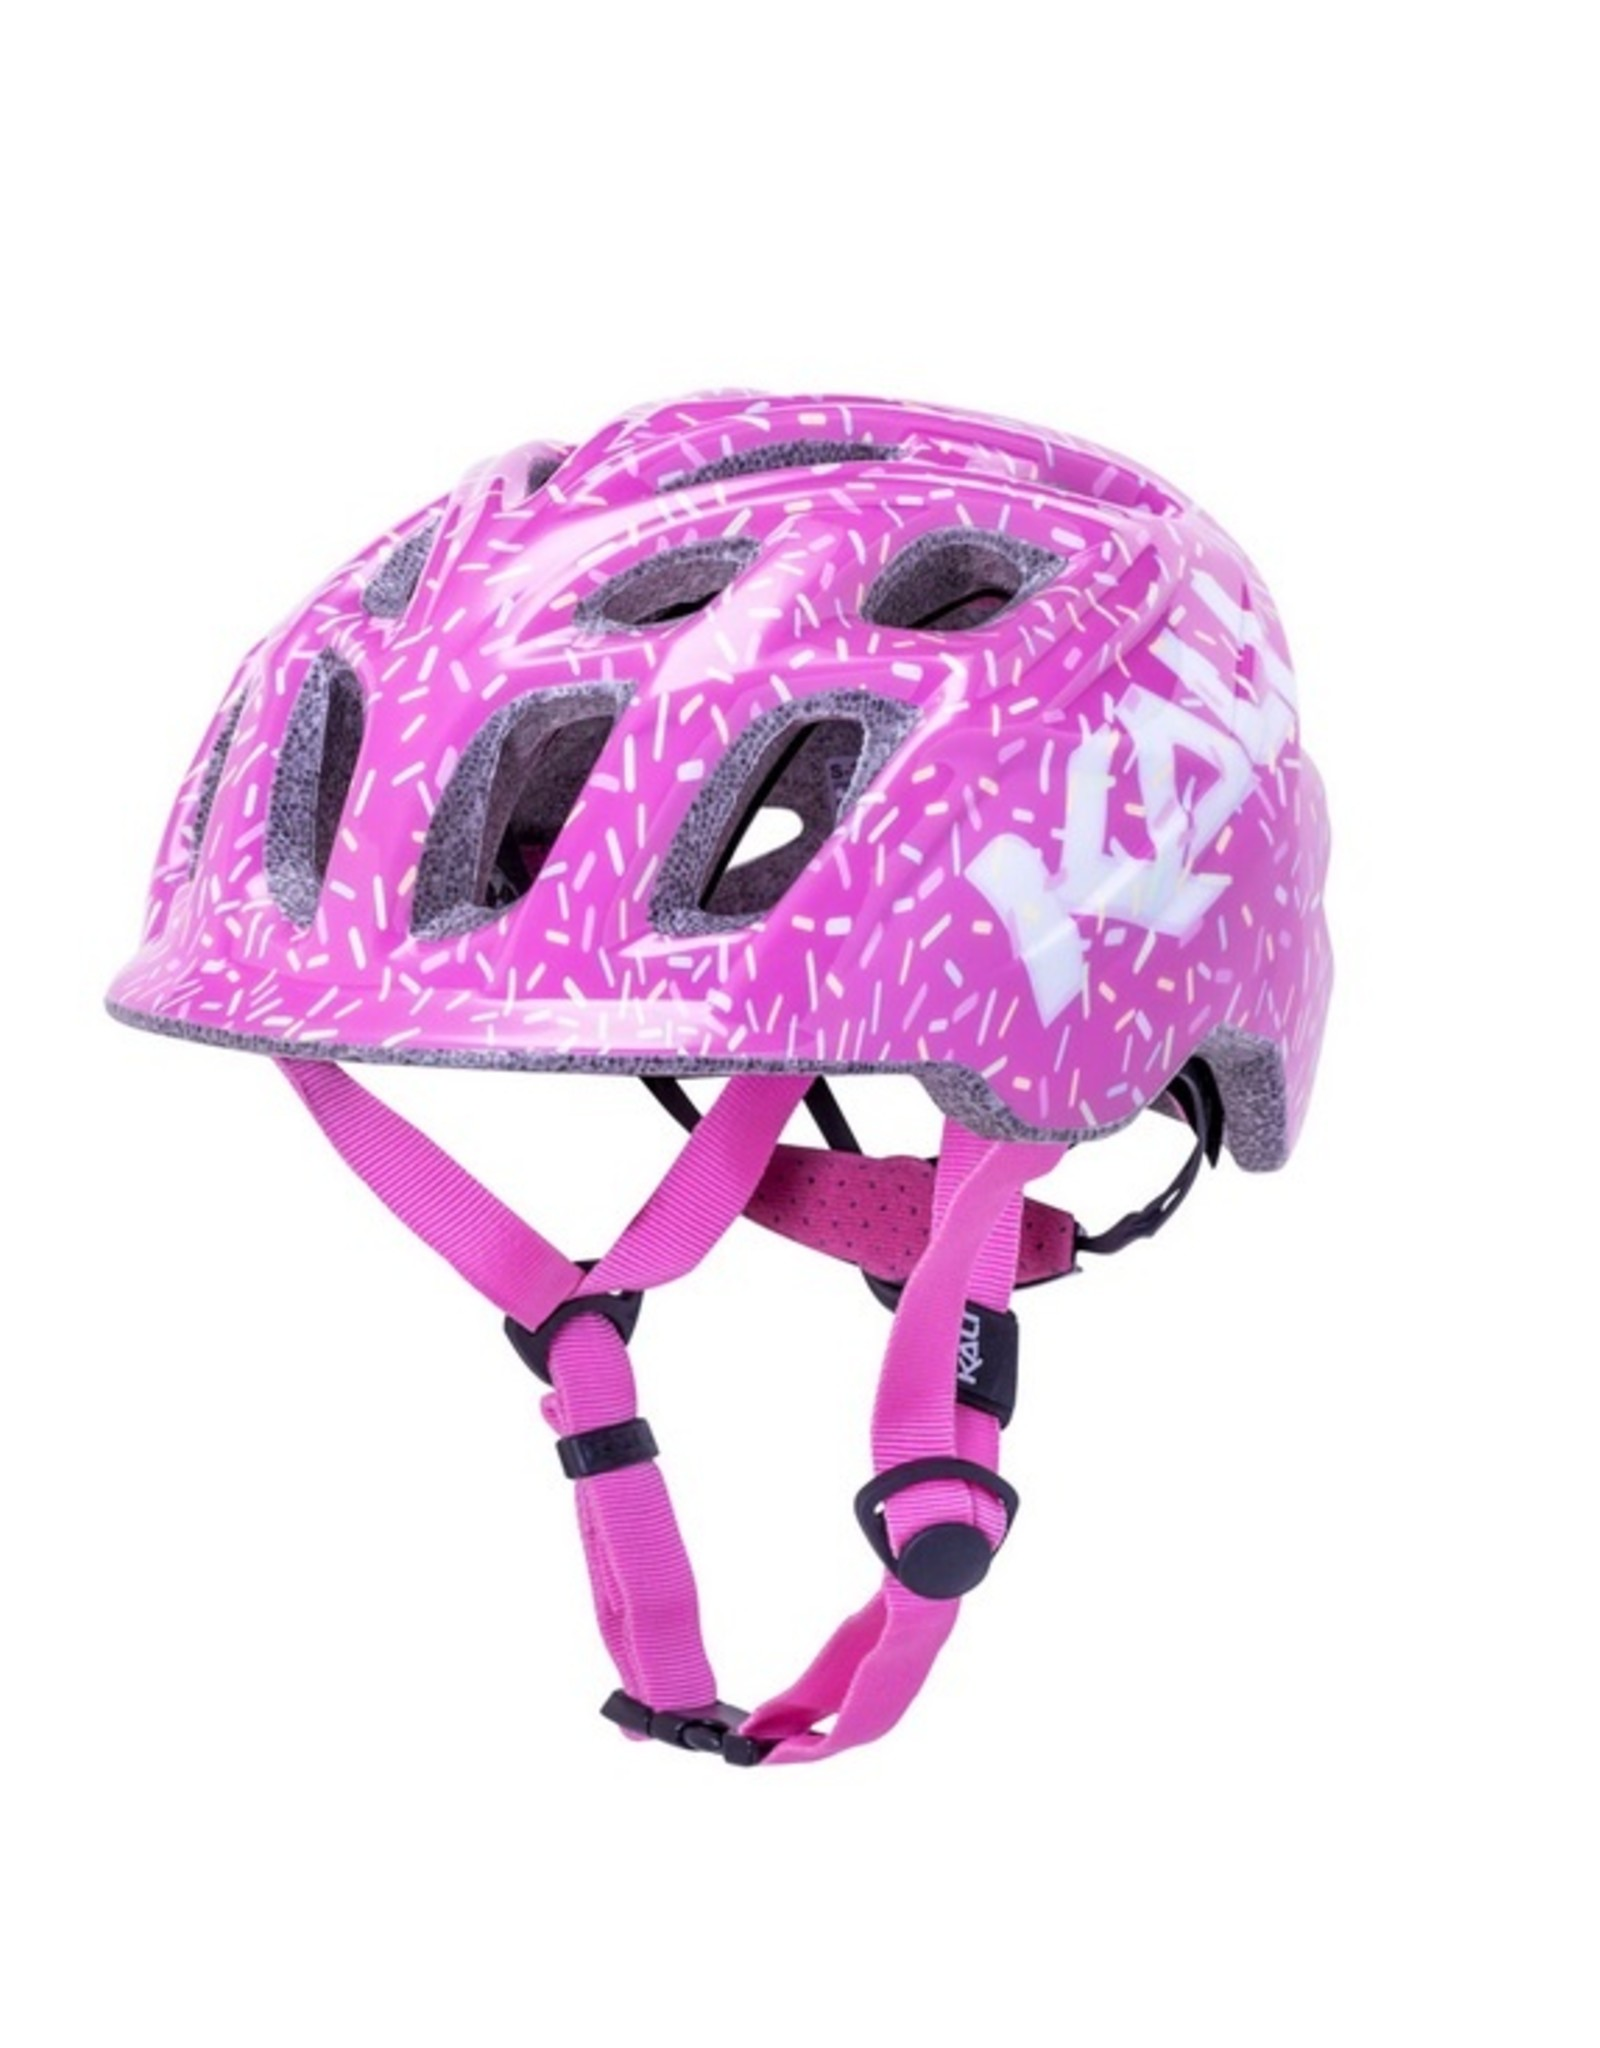 Kali Protectives Kali Protectives Chakra Child Helmet - Sprinkles Pink, Children's, X-Small